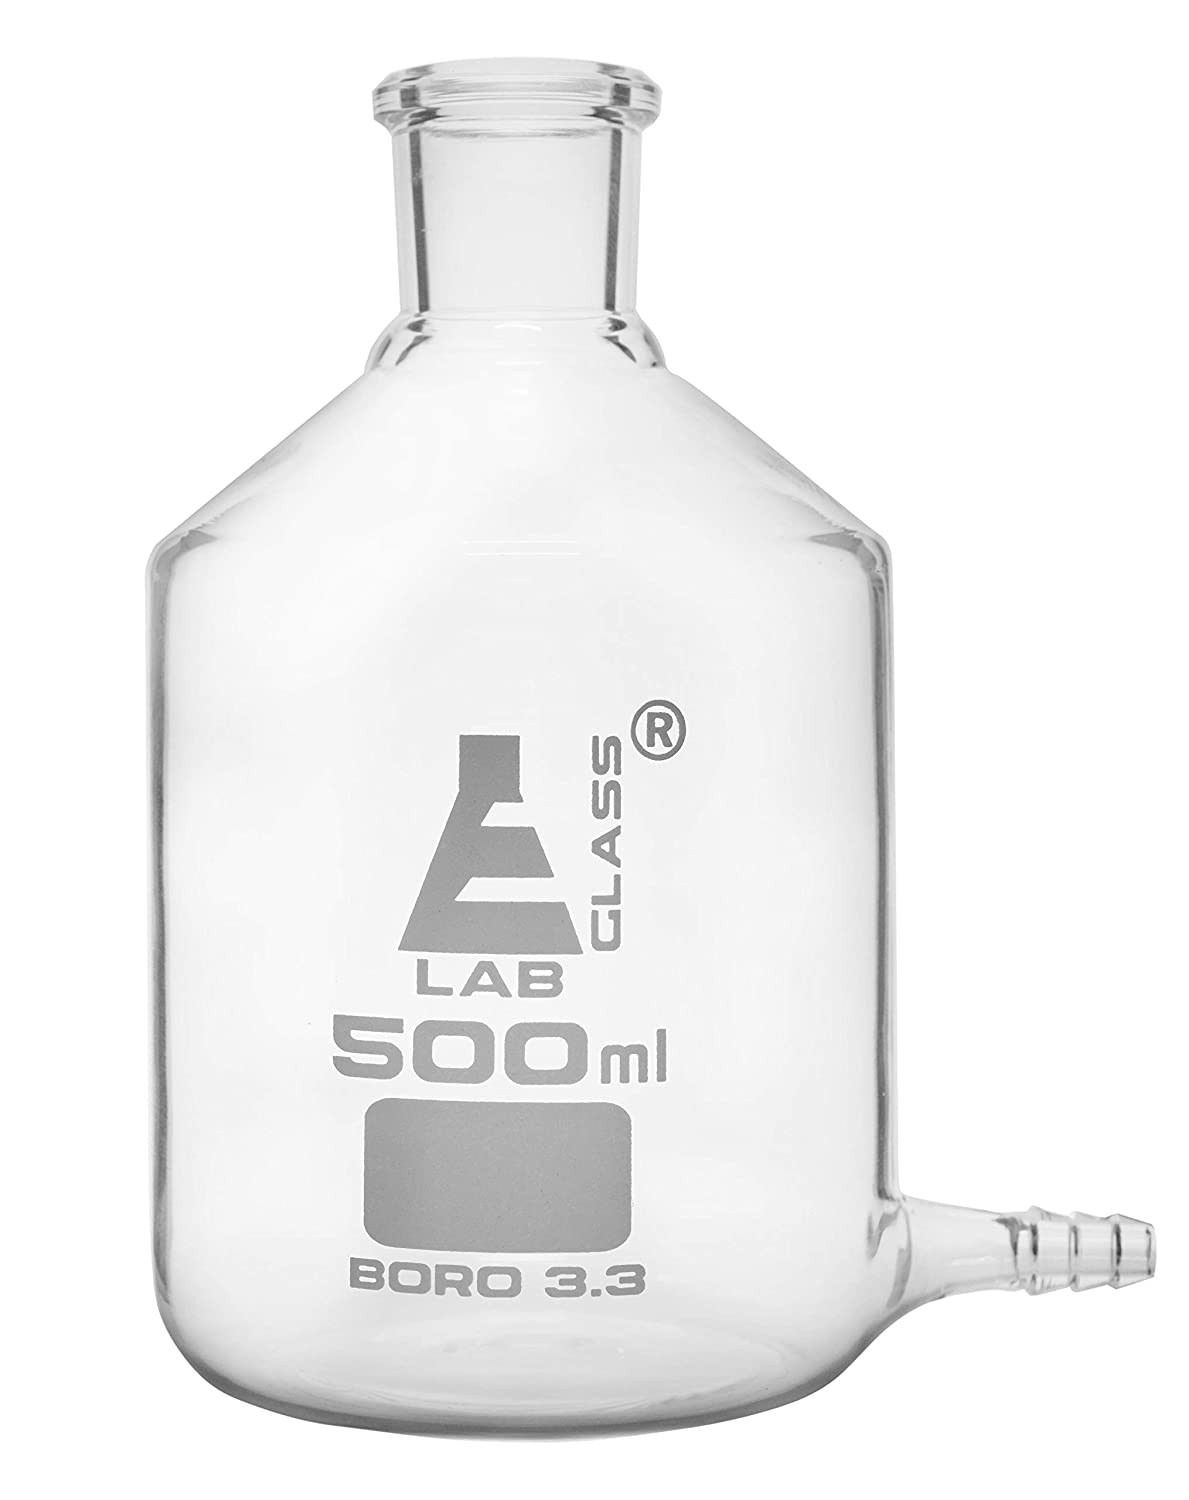 Aspirator Bottle 500ml Limited time trial price Dallas Mall - with Borosilicate Outlet for Tubing